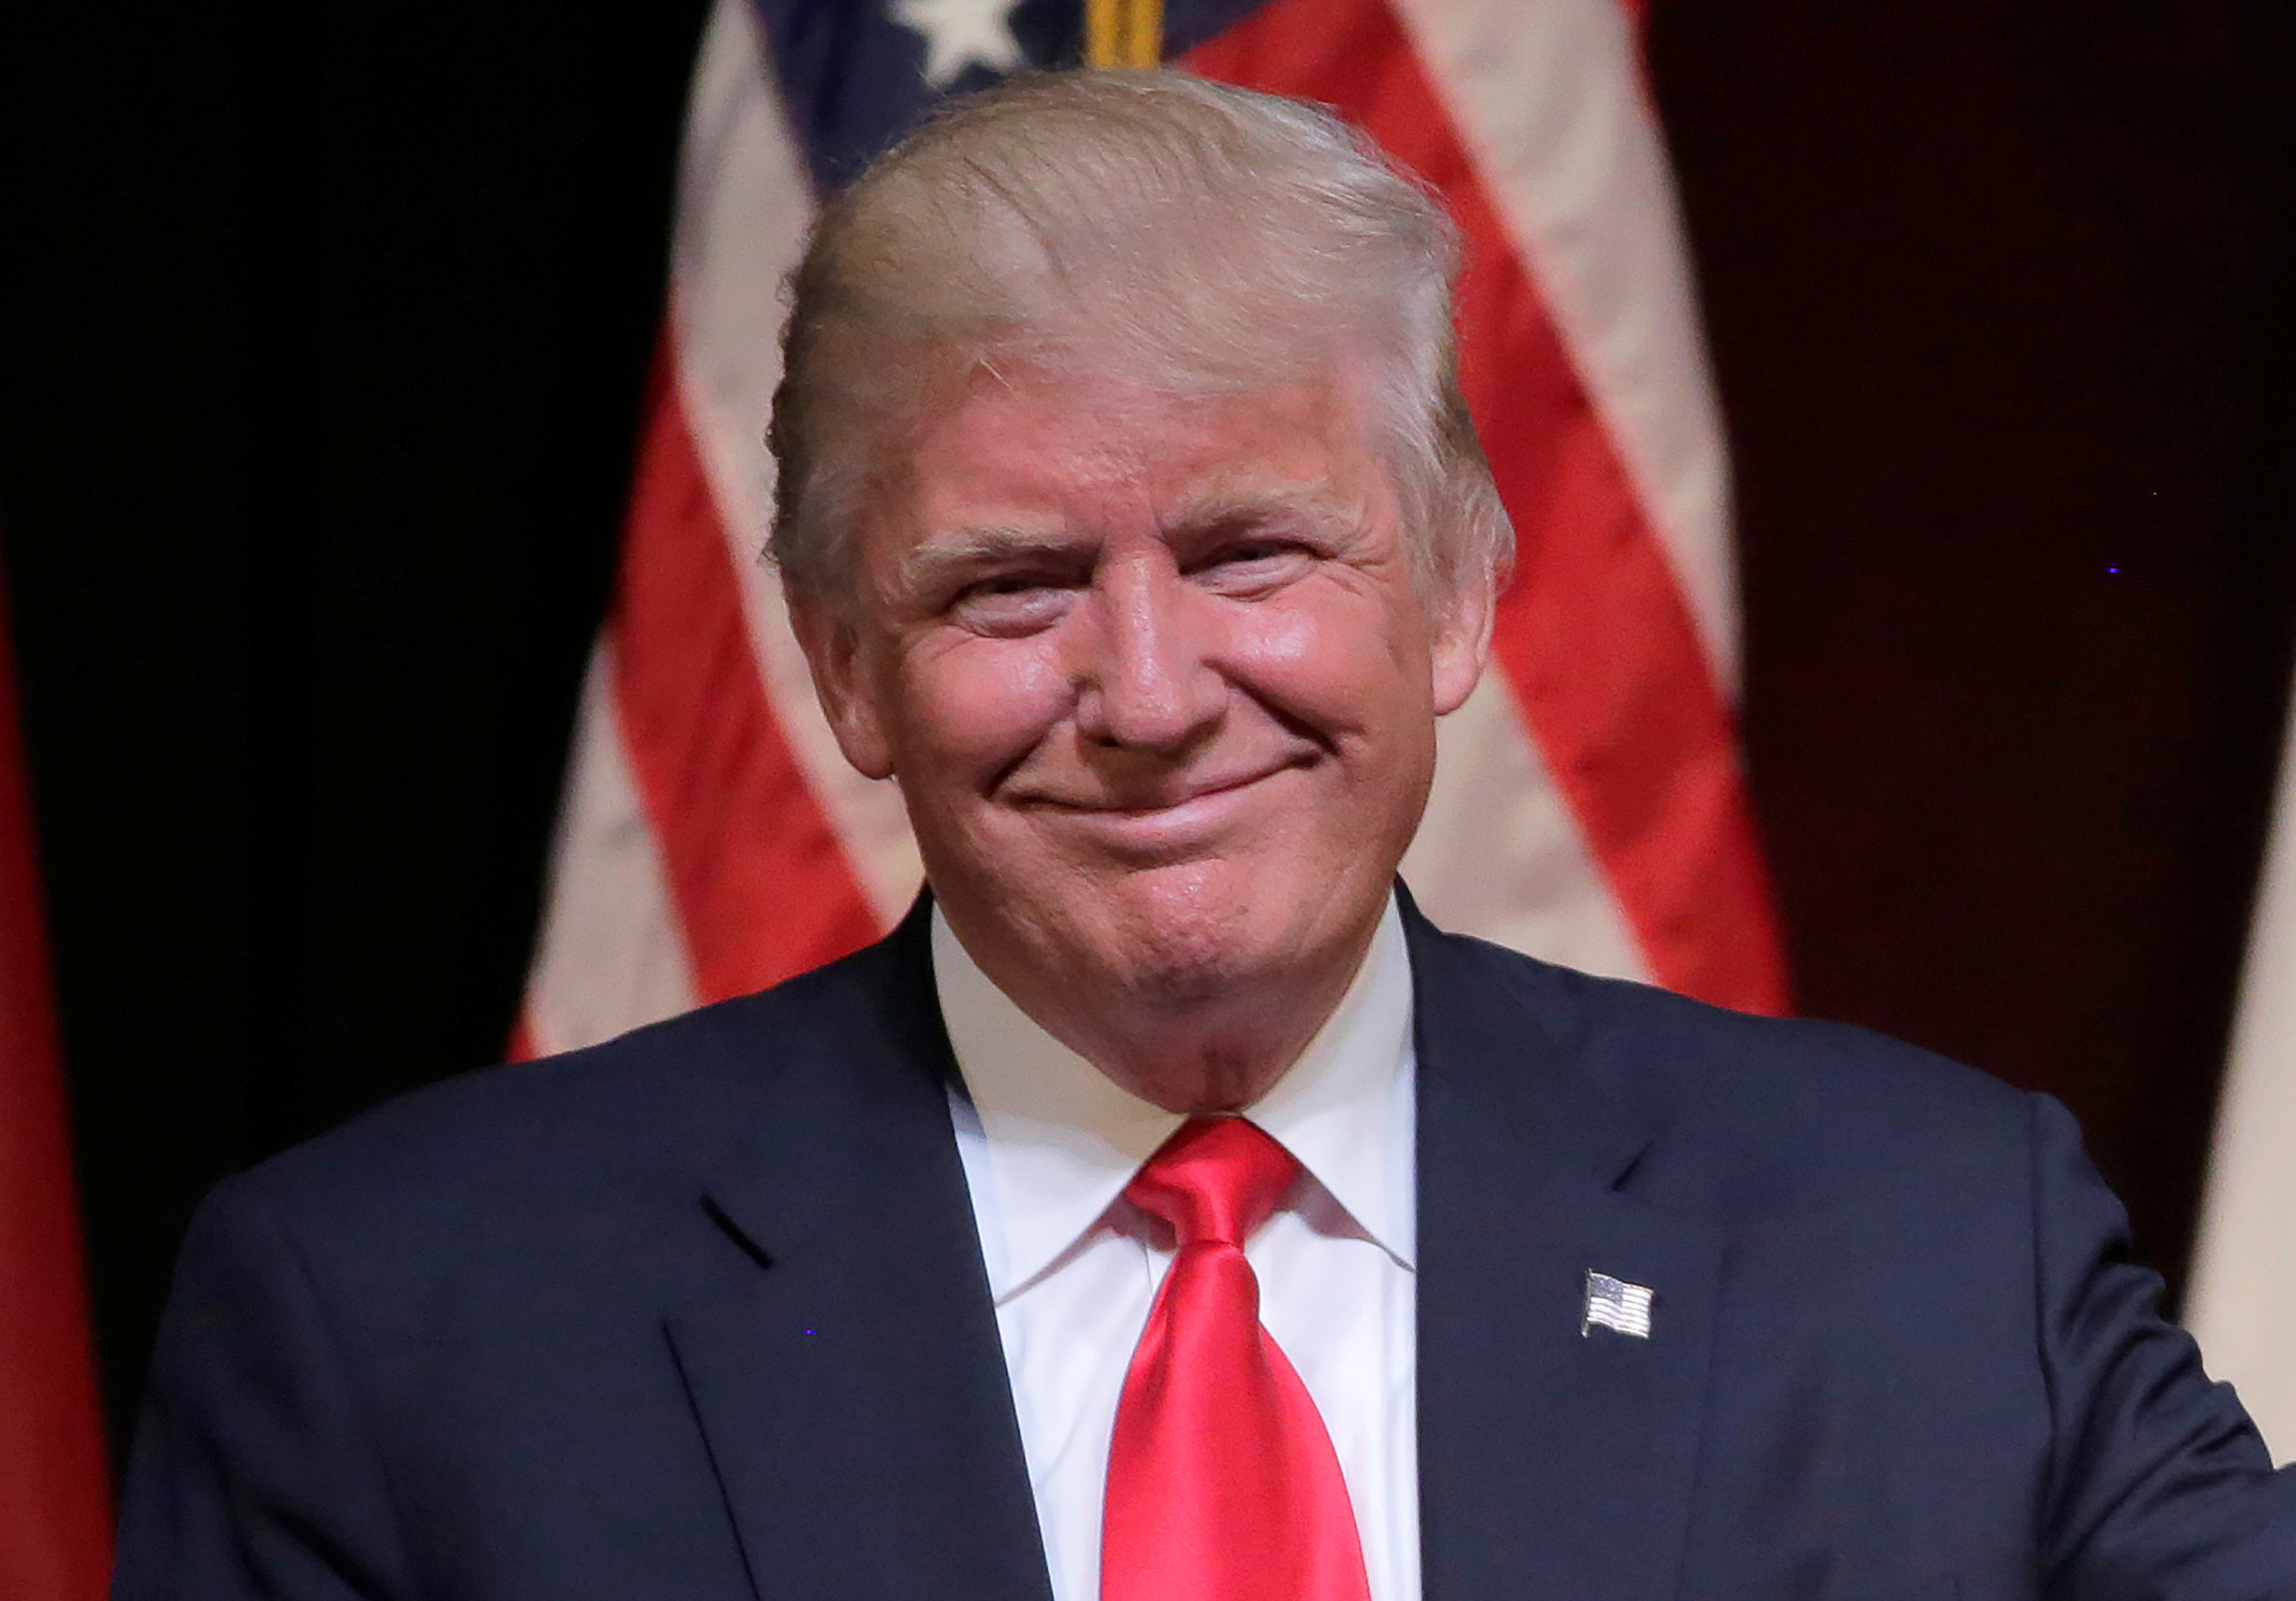 Republican presidential candidate Donald Trump smiles at a campaign rally in Raleigh, North Carolina, U.S., July 5, 2016.